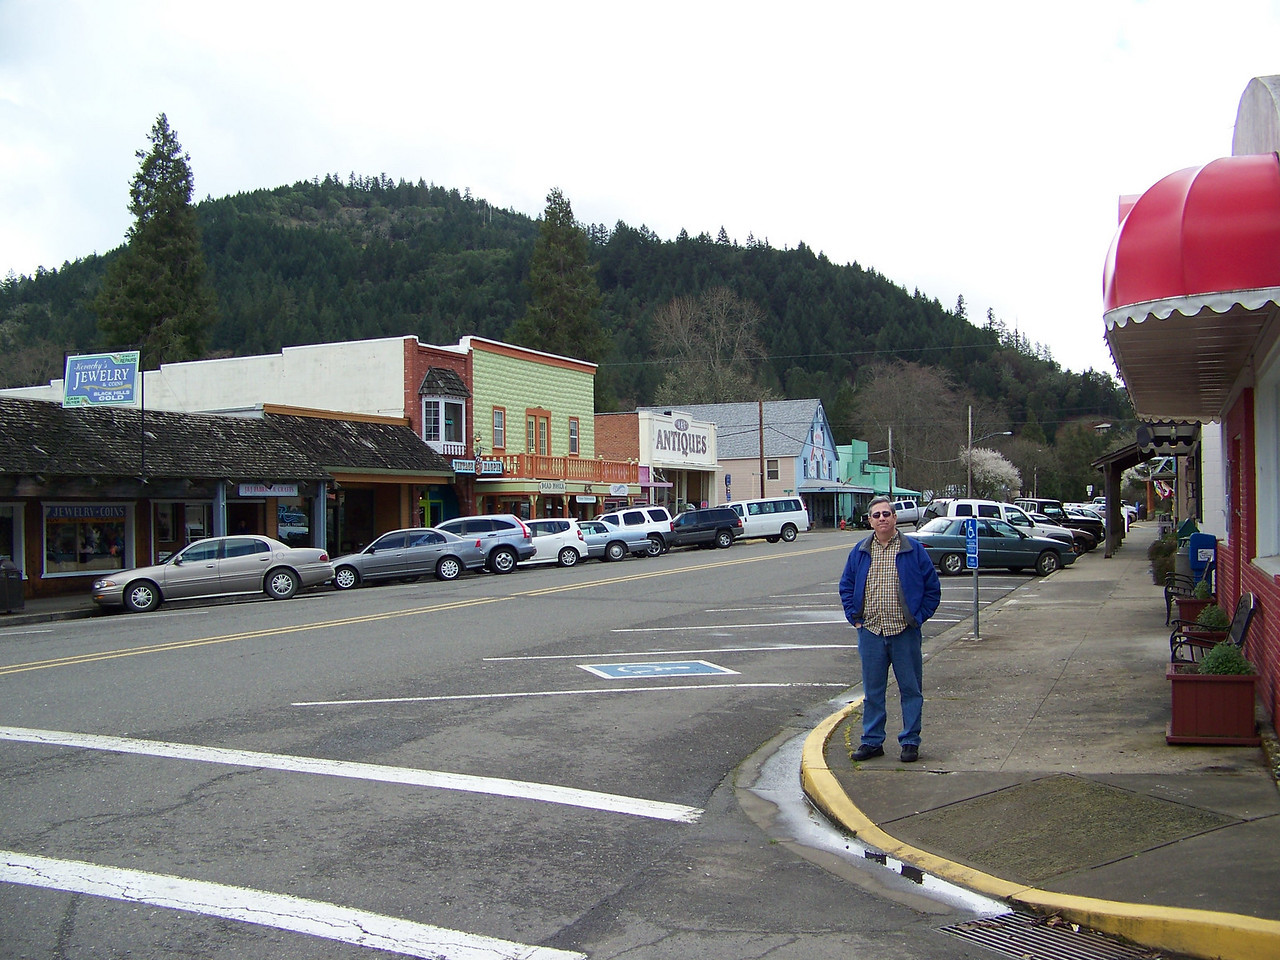 We'd stayed at the Seven Feathers Resort a couple times prior to this trip, but we'd never explored the nearby town.  Here's Dave in downtown Canyonville, which is about a half mile from the casino.